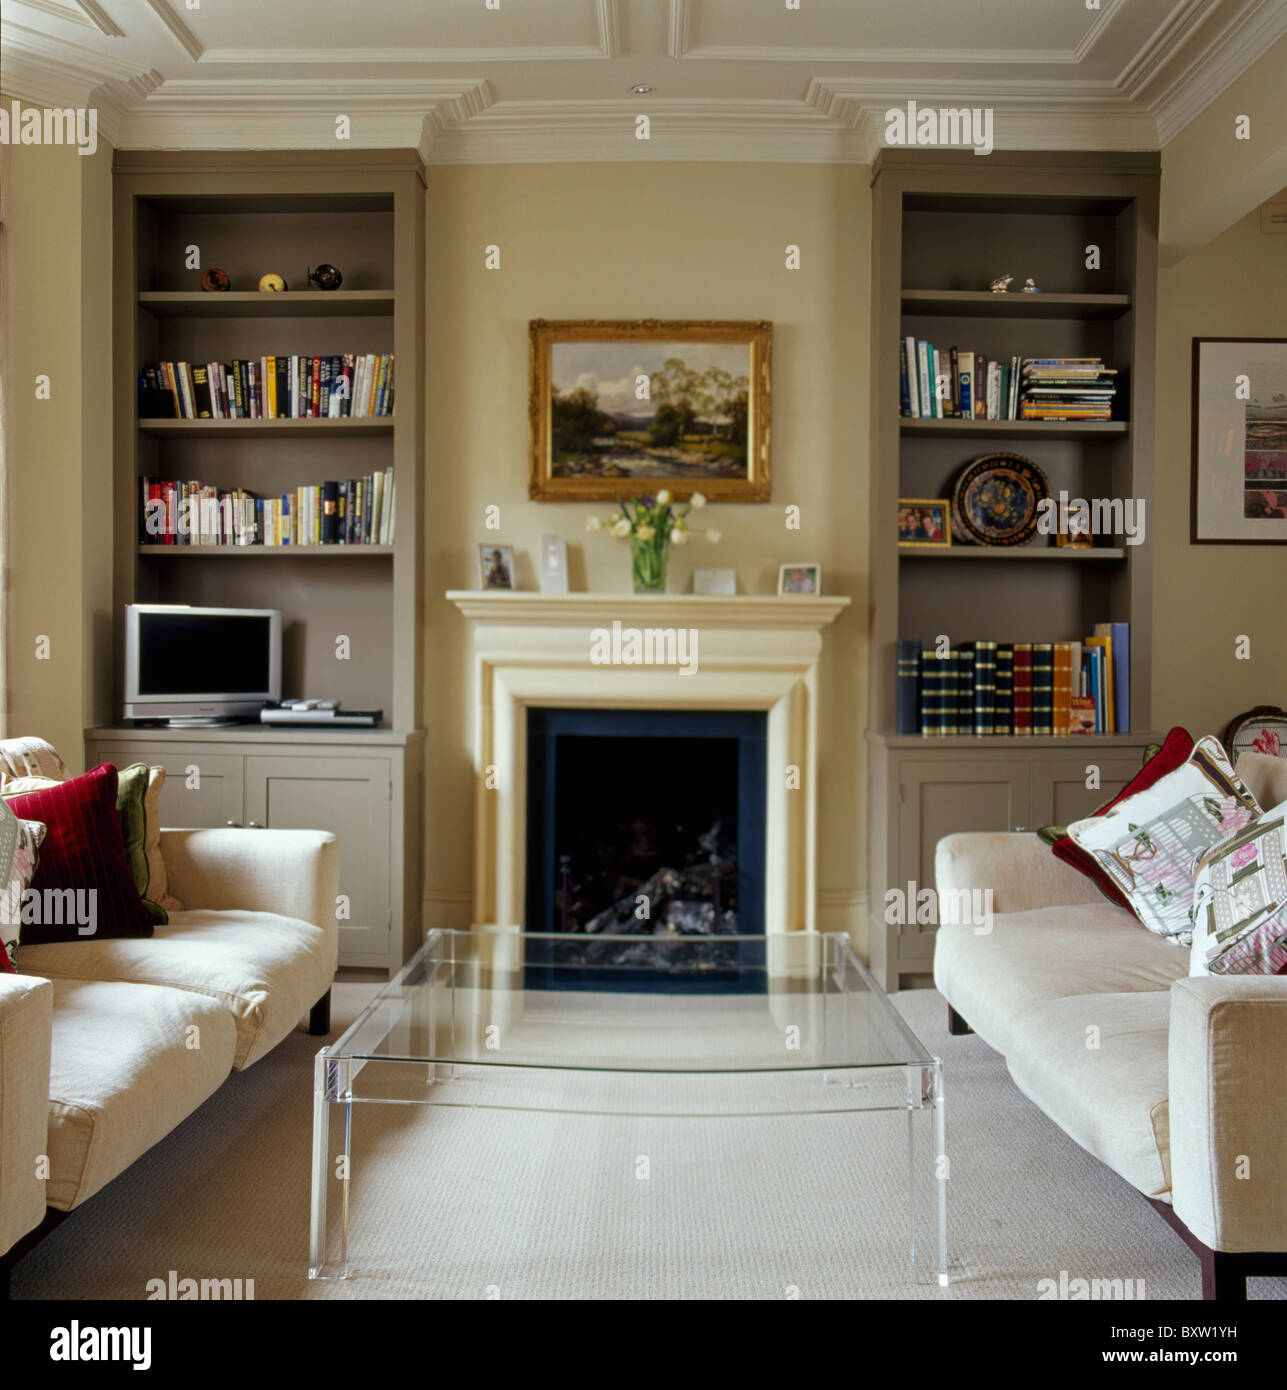 Modern Perspex Table And Cream Sofas In Traditional Cream Living Room With  Alcove Shelves On Either Side Of Fireplace